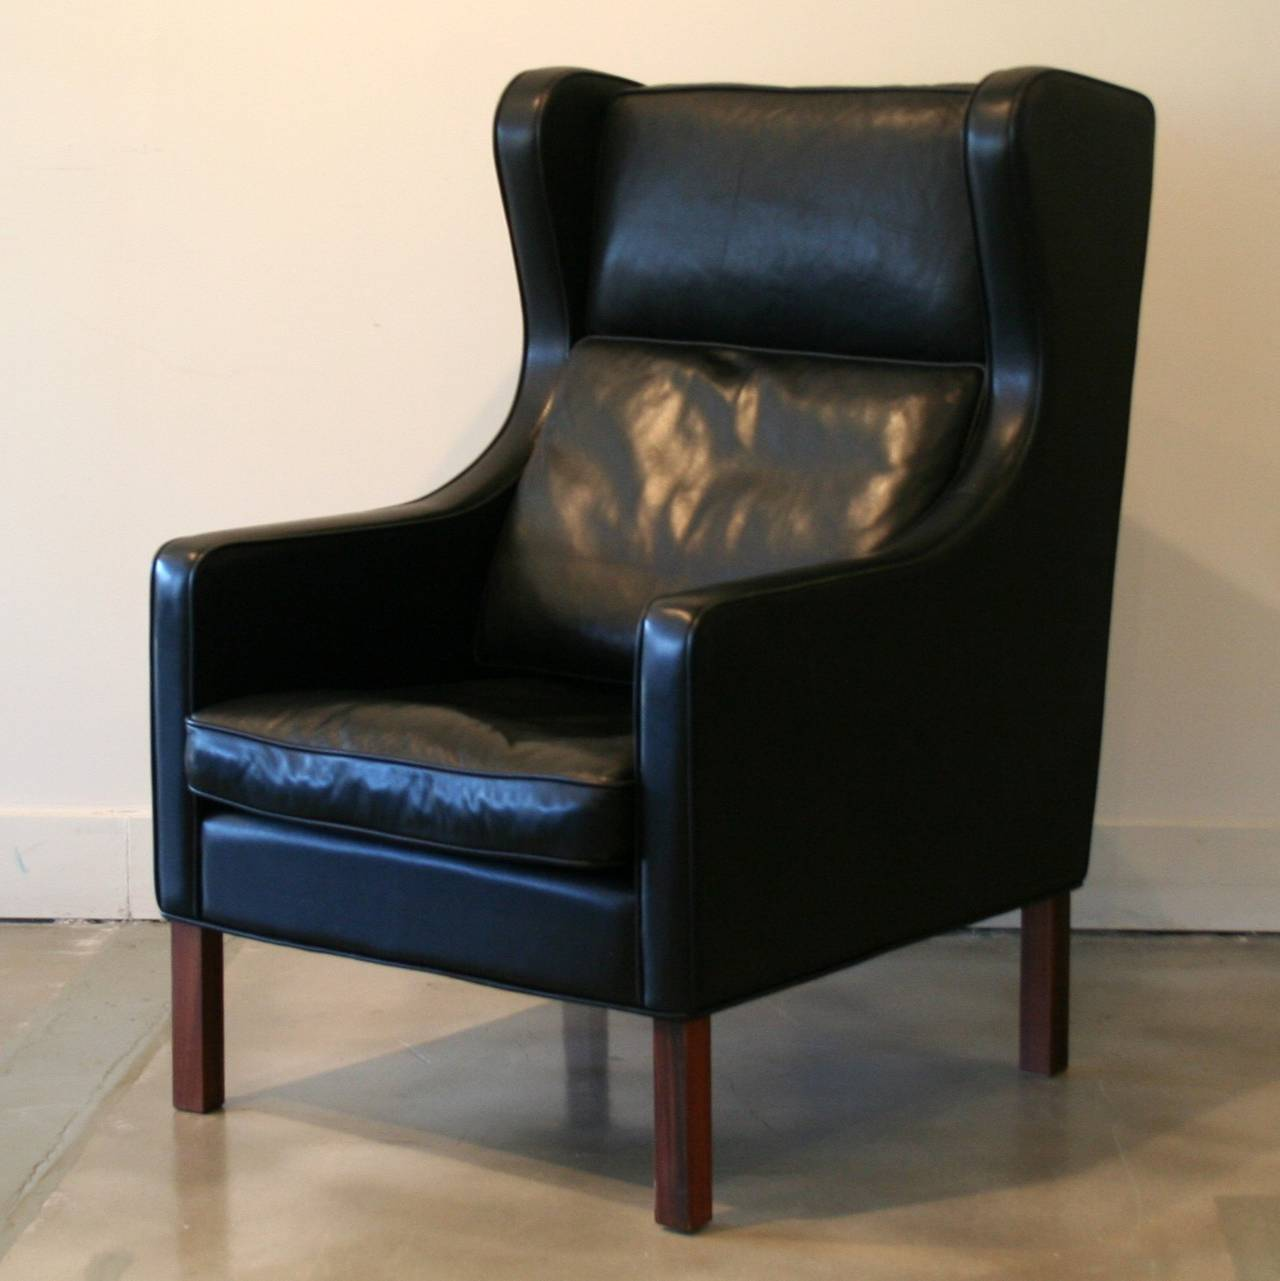 leather wingback chairs canada recliner johannesburg vintage danish black chair at 1stdibs